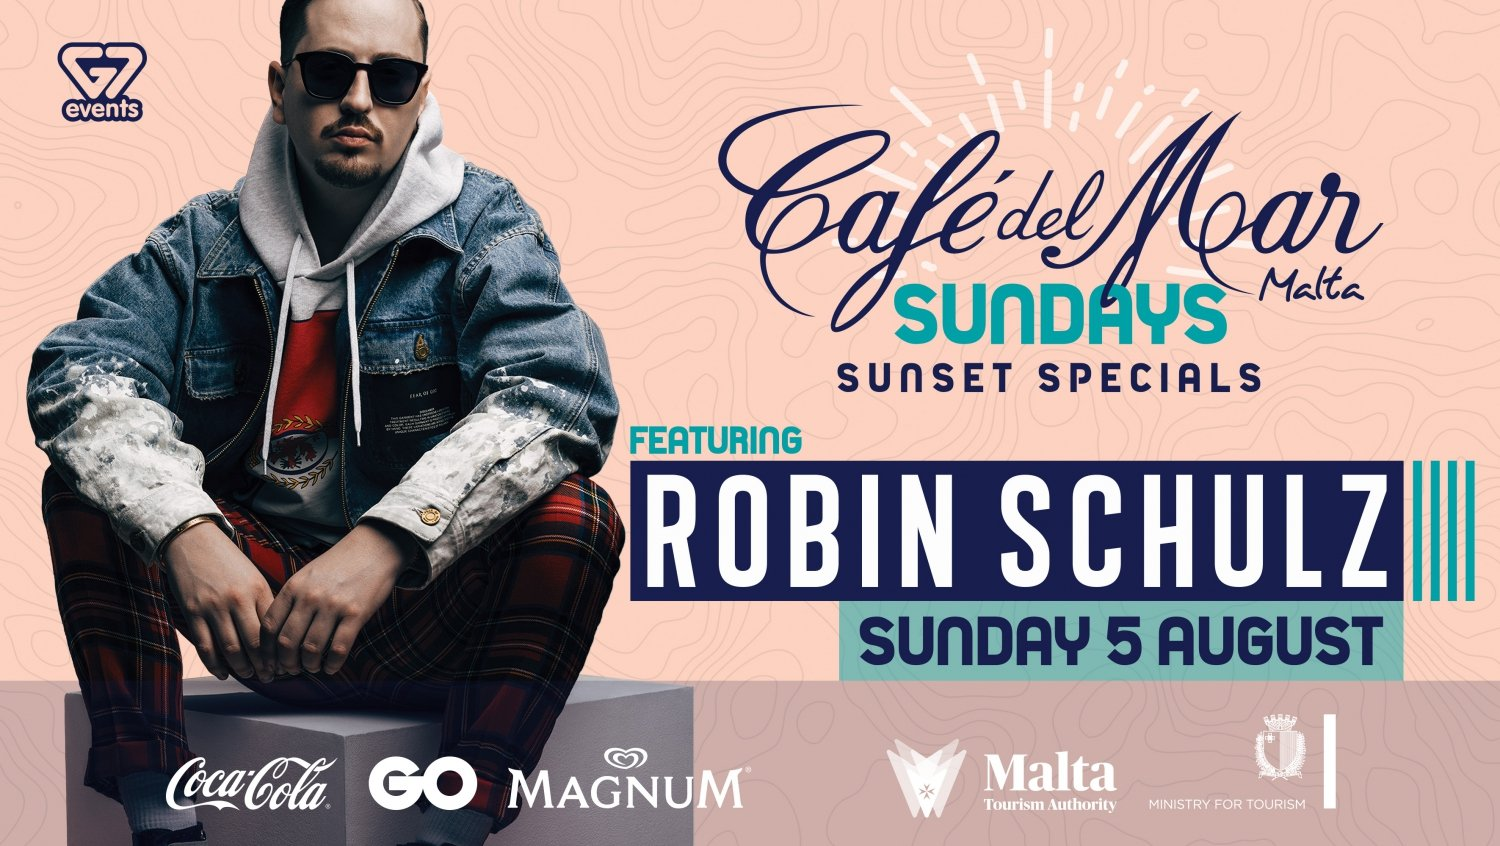 Robin Schulz at Café del Mar